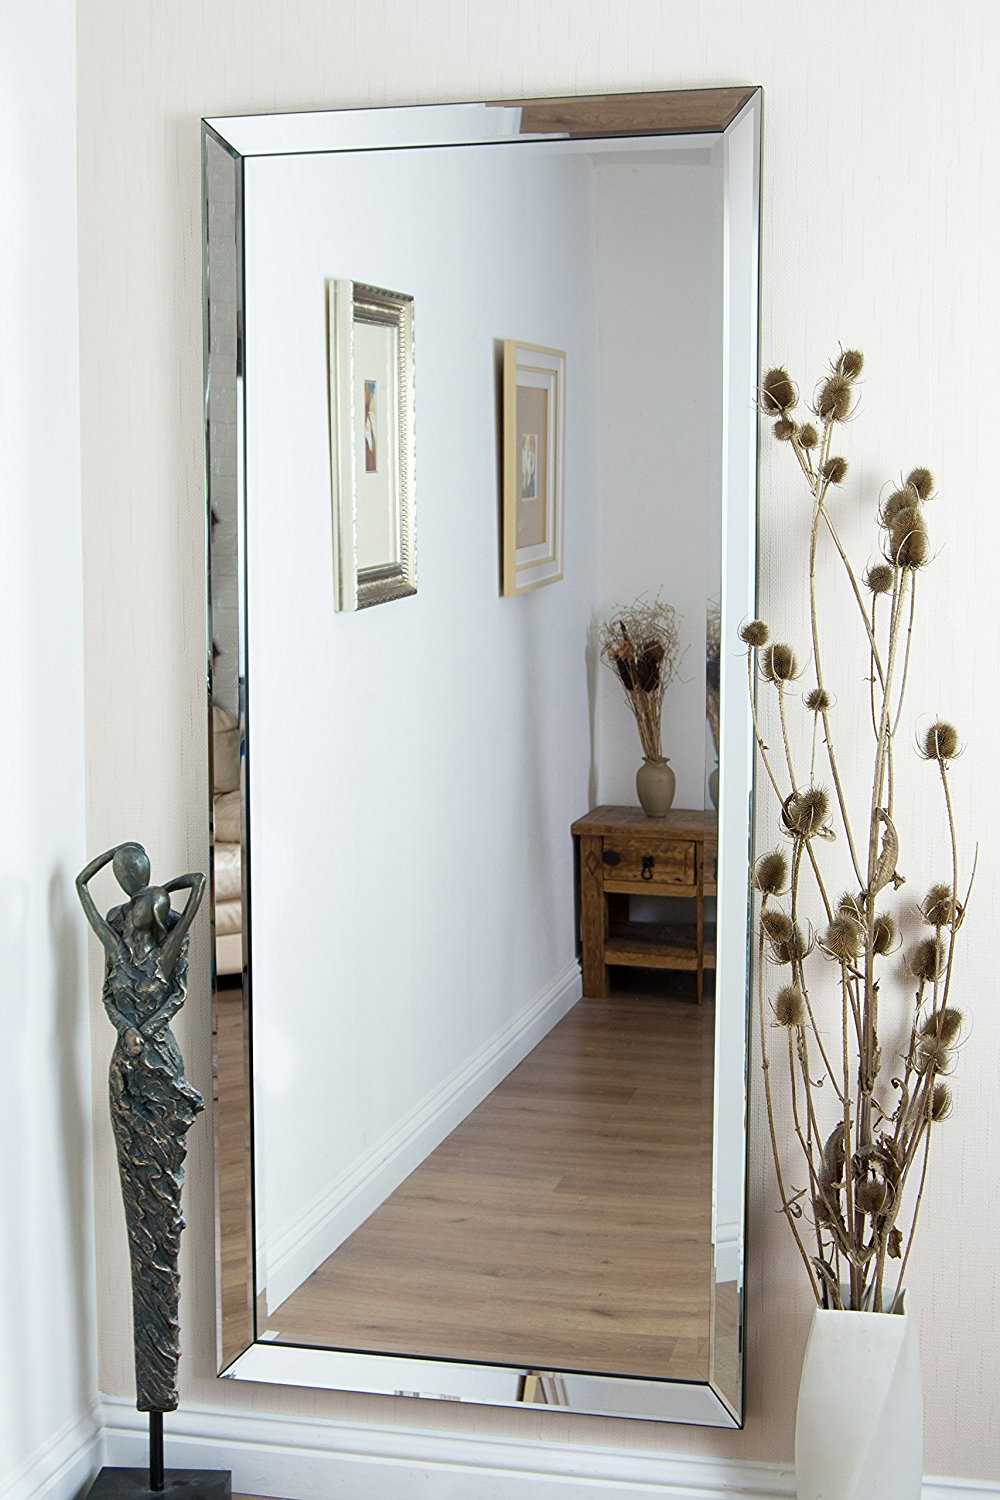 Mirrors: Reflect Your Personal Style With Floor Length Throughout Fashionable Floor Wall Mirrors (View 11 of 20)